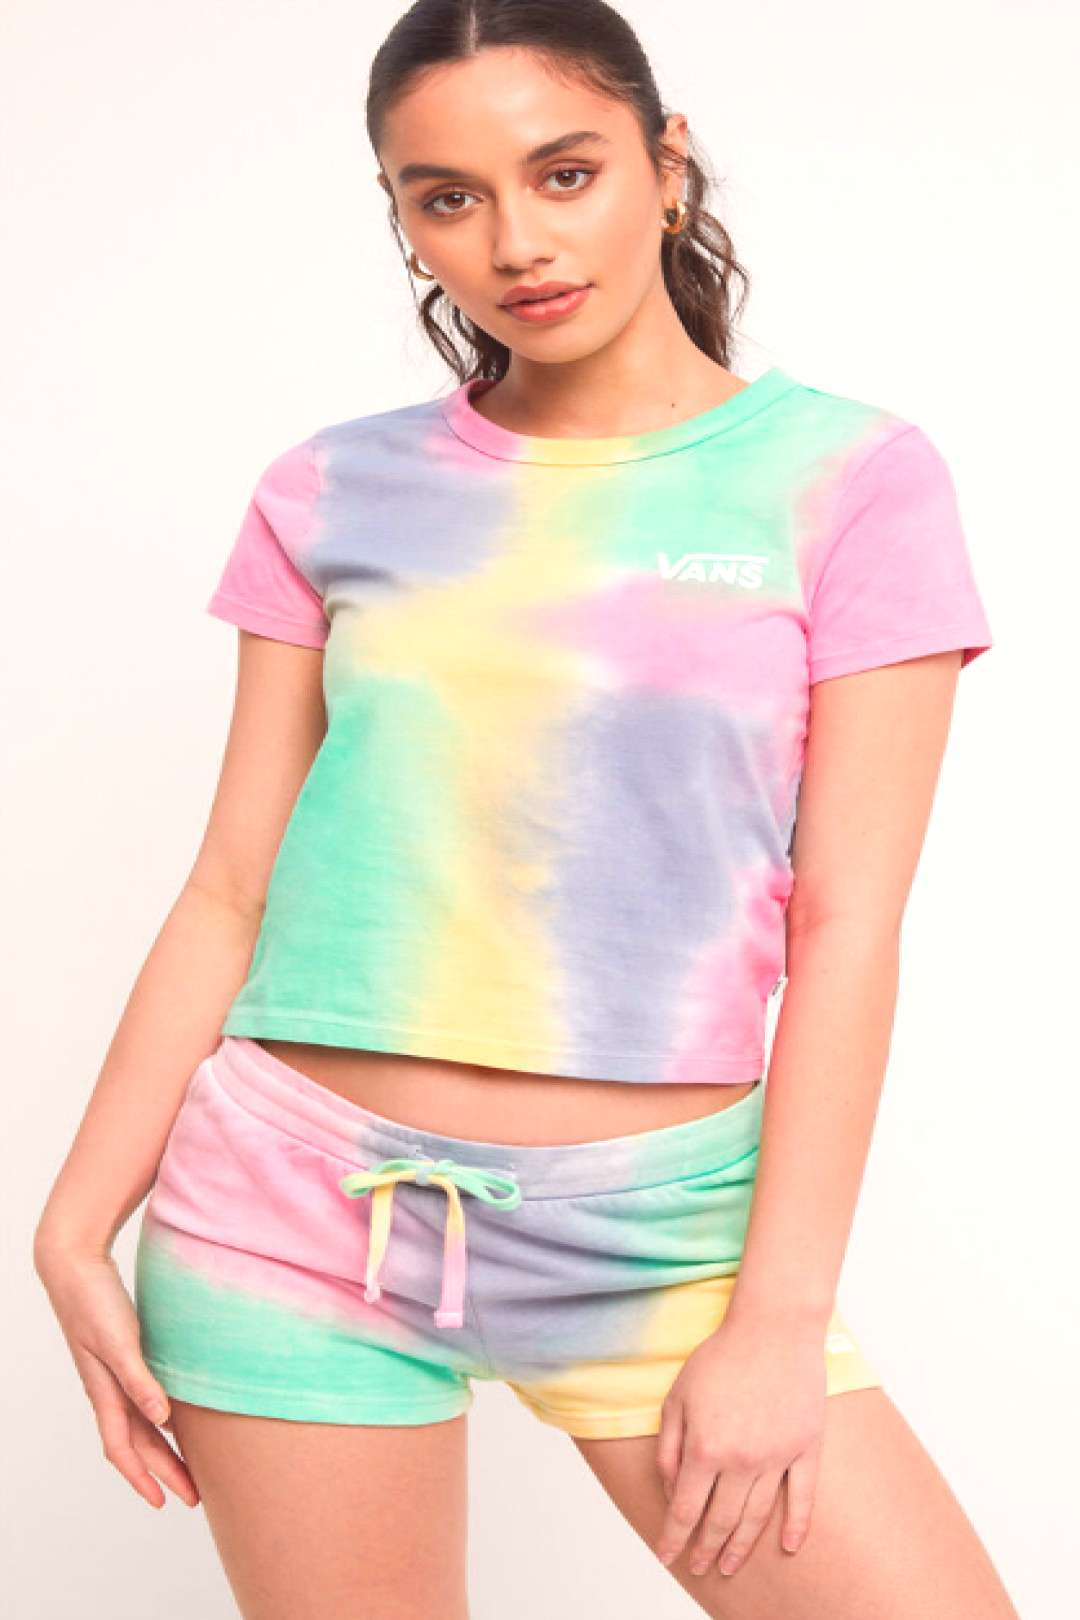 Vans Aura Baby T-Shirt Vans Aura Baby T-Shirt - Update your skate style with the Aura Baby T-Shirt